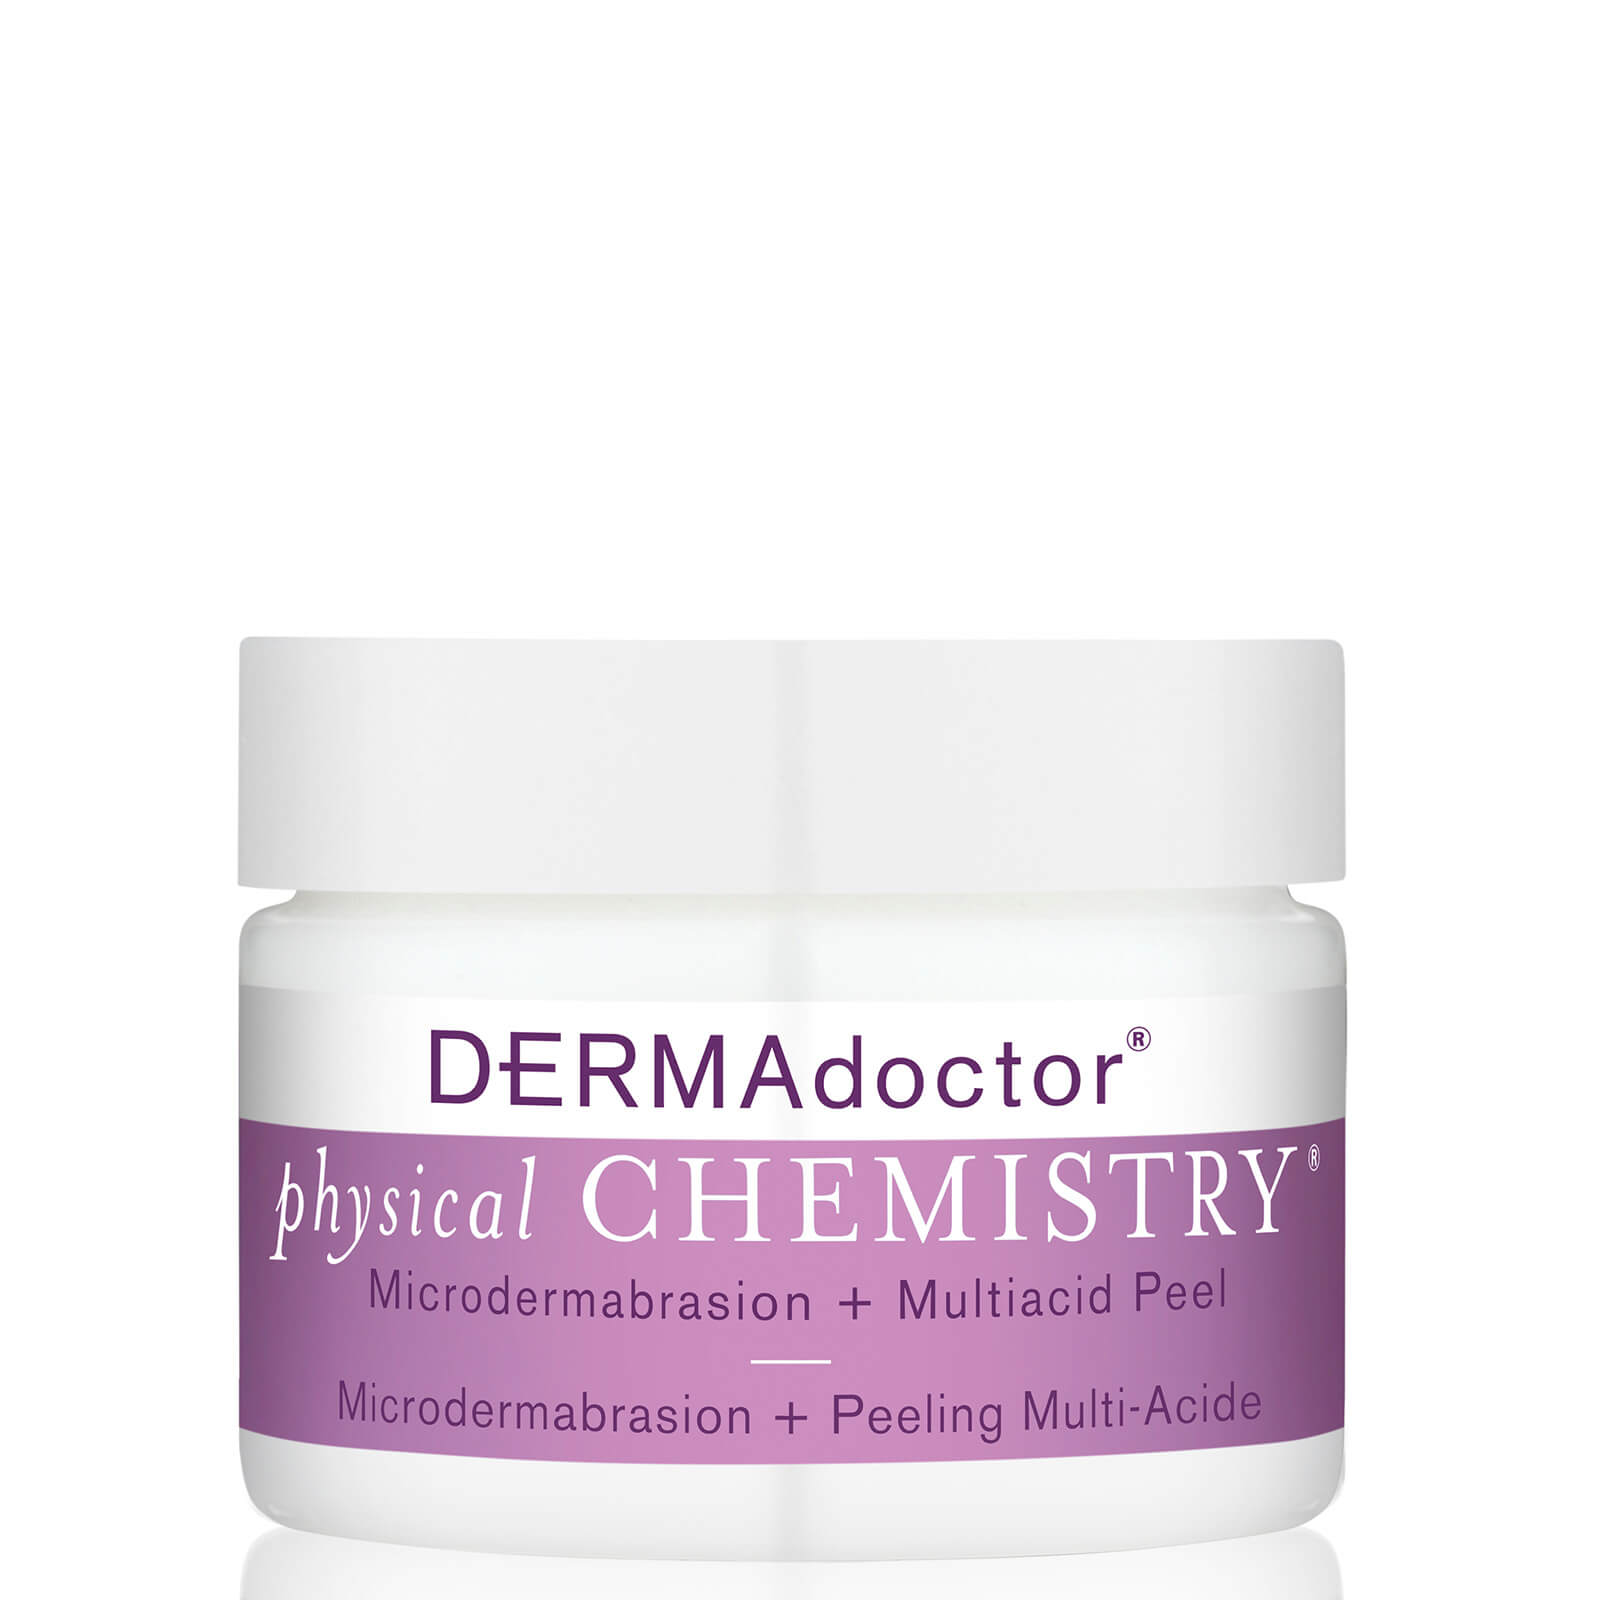 Watch a story about DERMADOCTOR PHYSICAL CHEMISTRY FACIAL MICRODERMABRASION AND MULTI-ACID PEEL 1.7 OZ